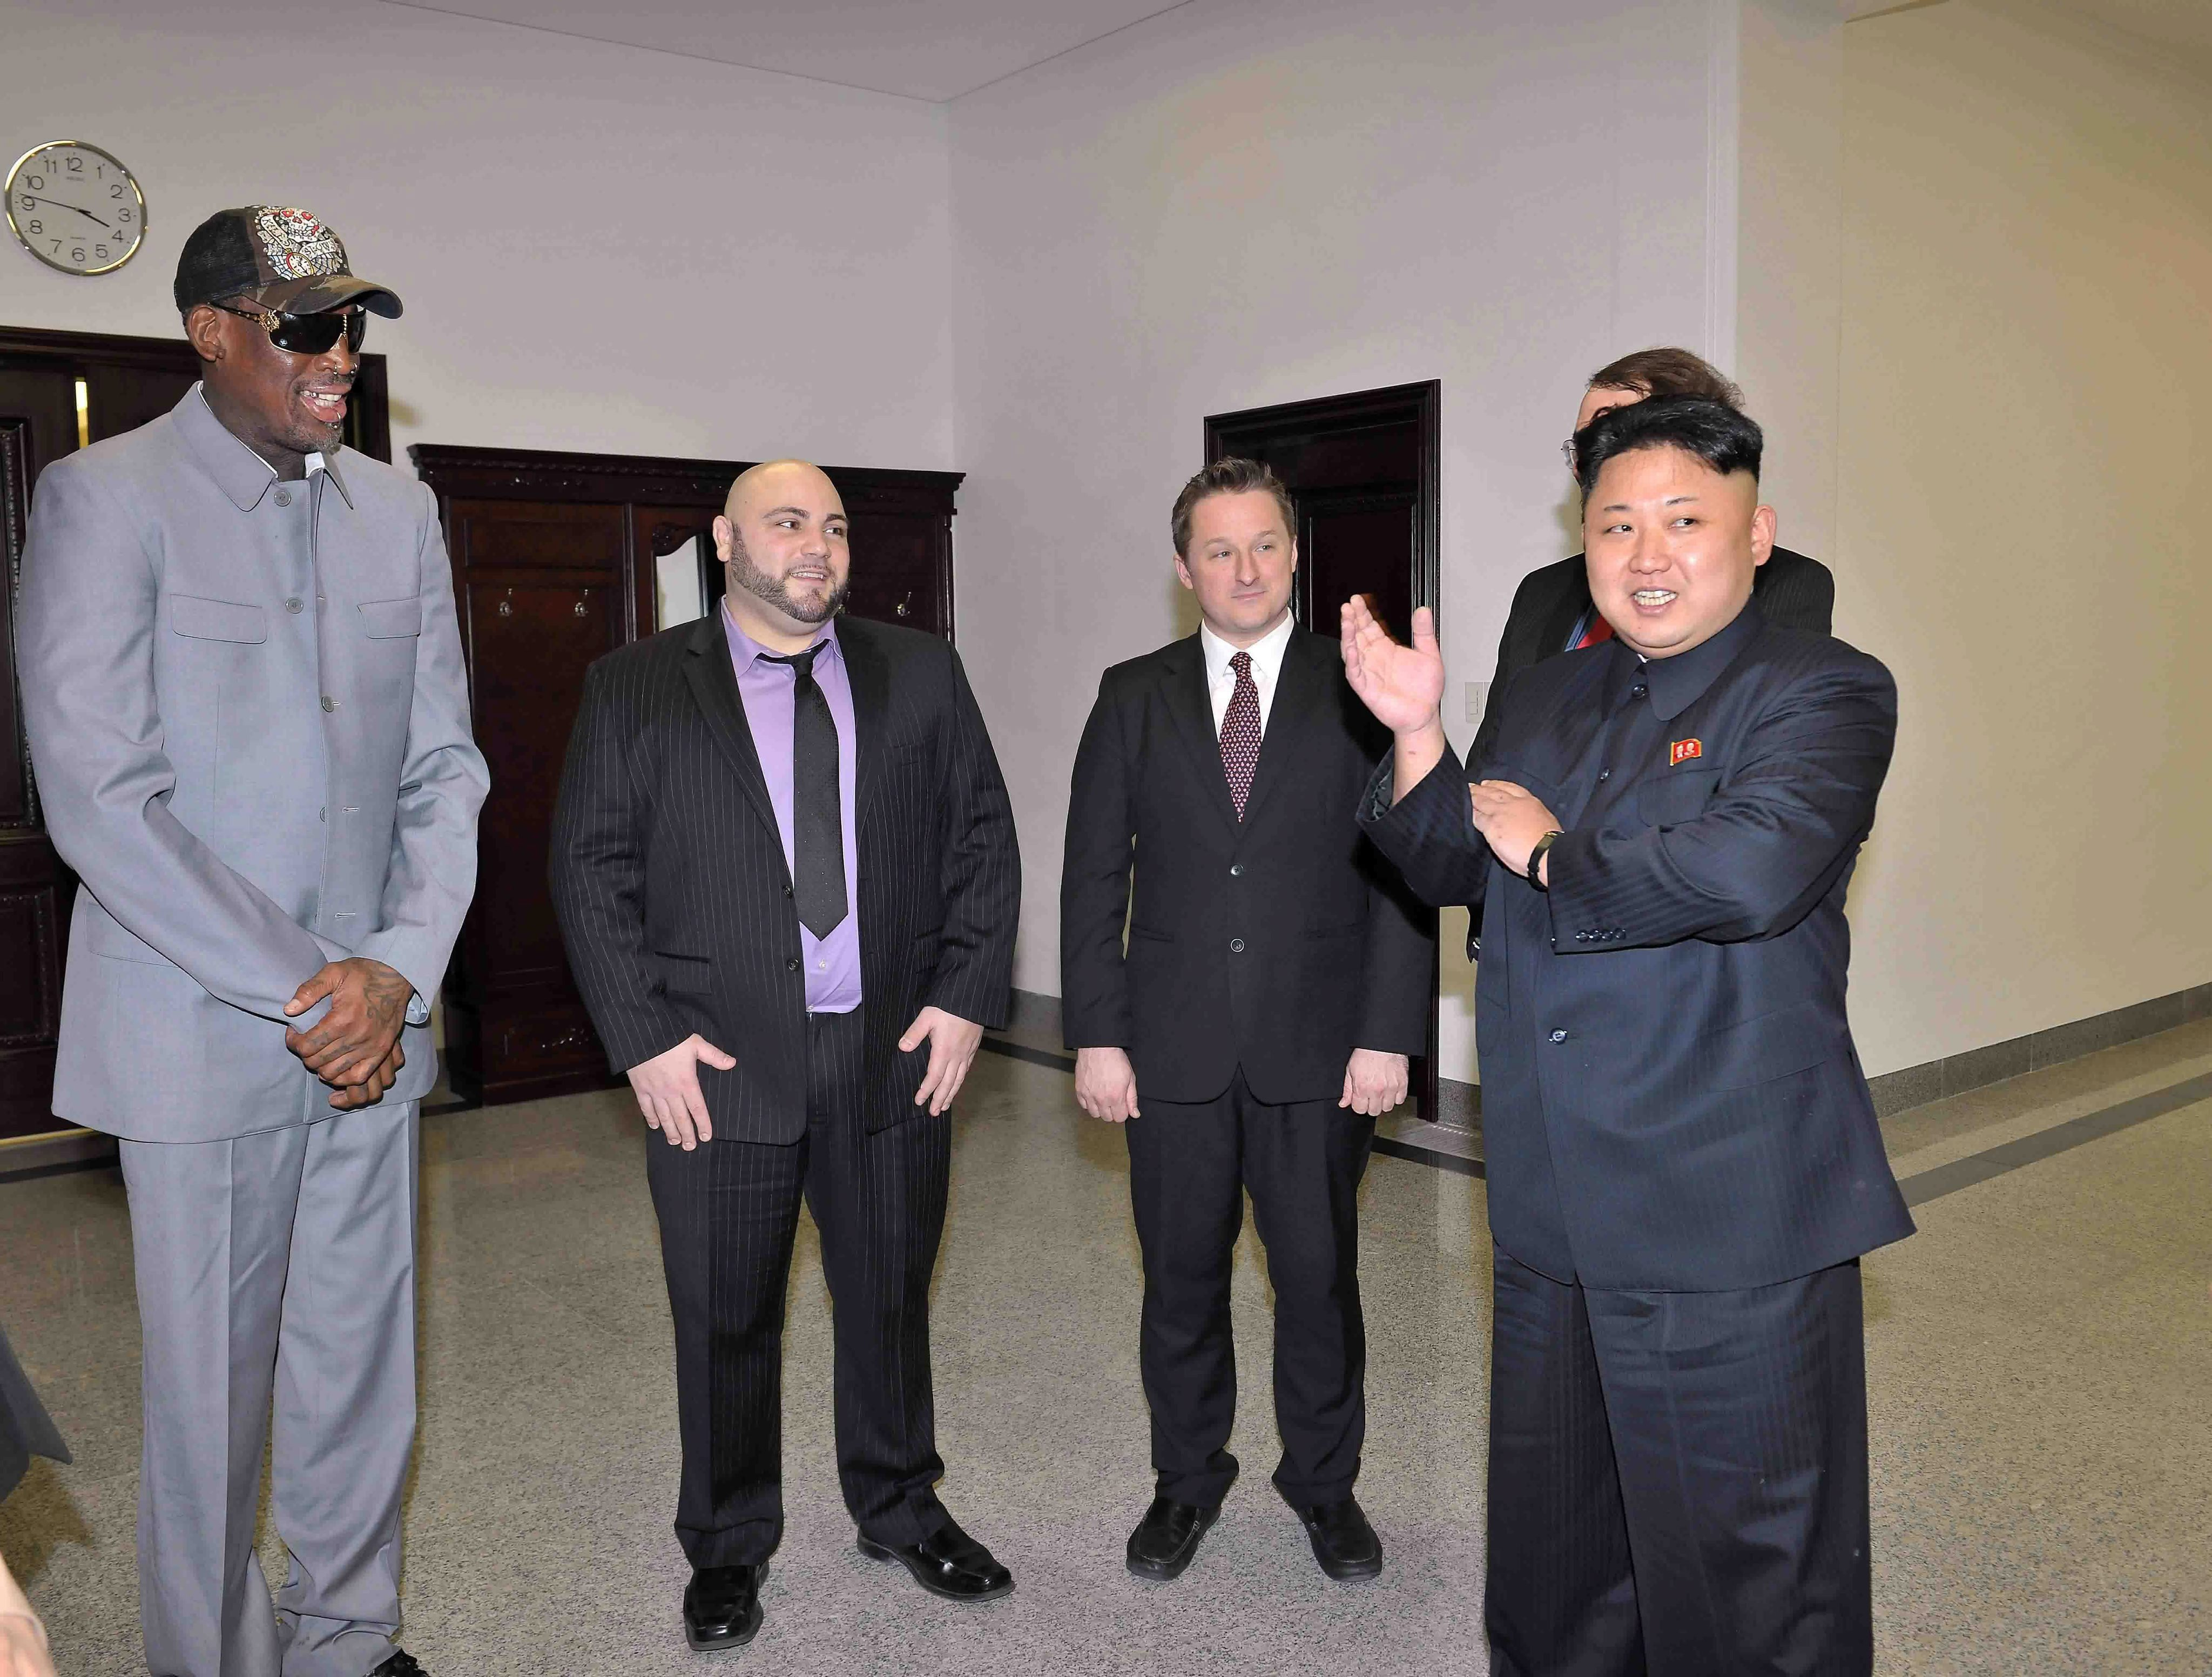 S&M: Weekend at Kim-Jong-Un's (with apologies to Bernie)